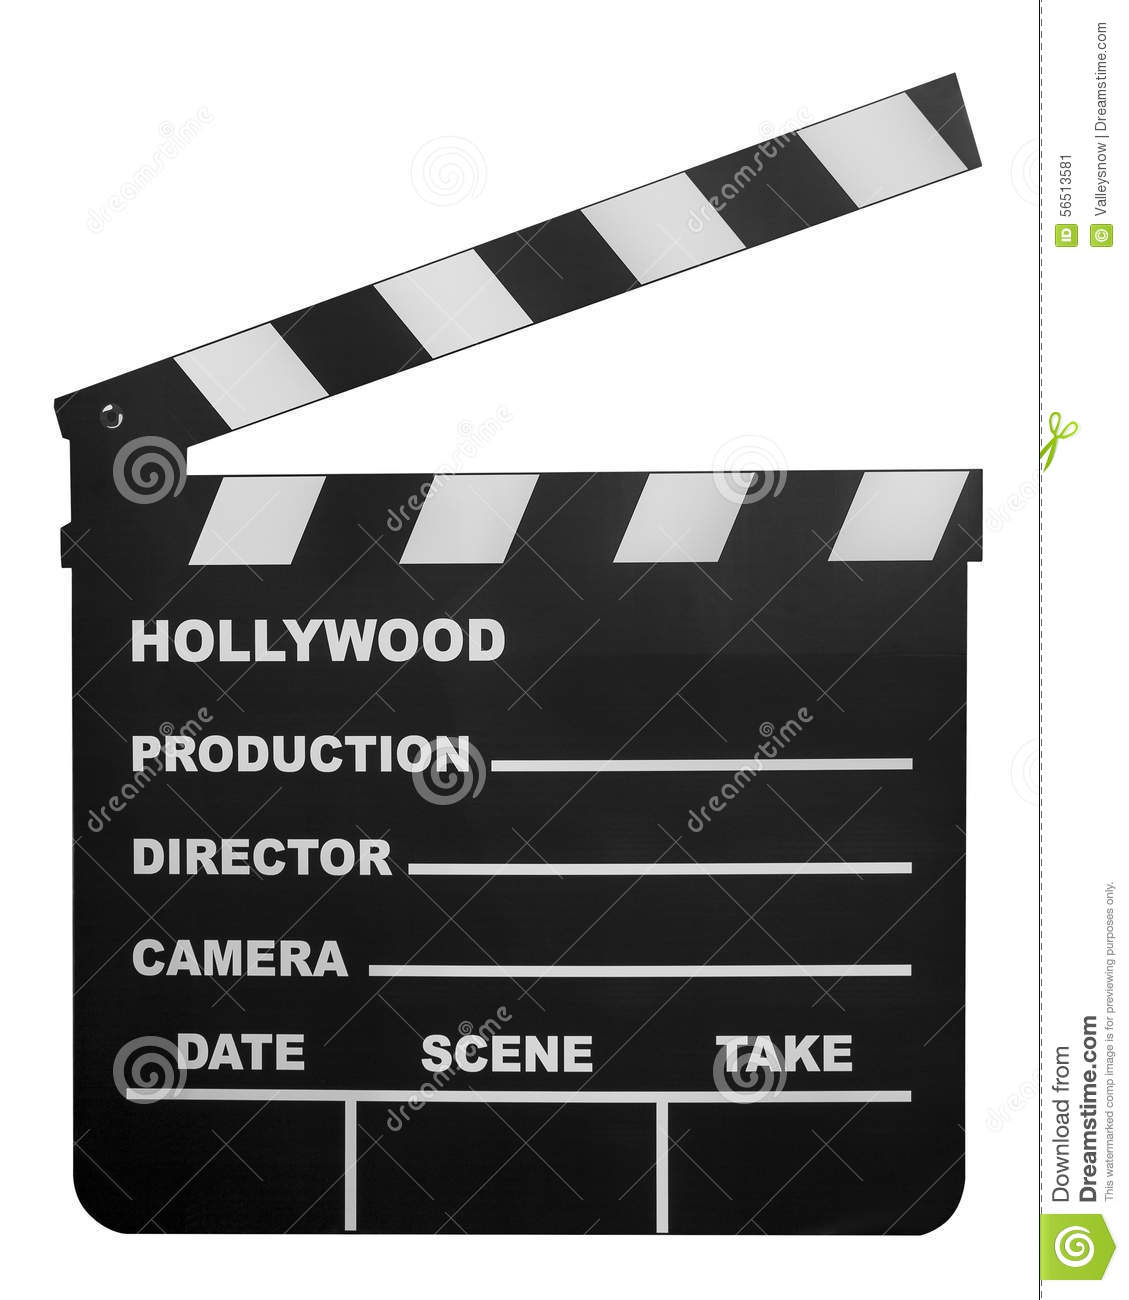 Movie Shooting Board Stock Image Image Of Arts Industry 56513581